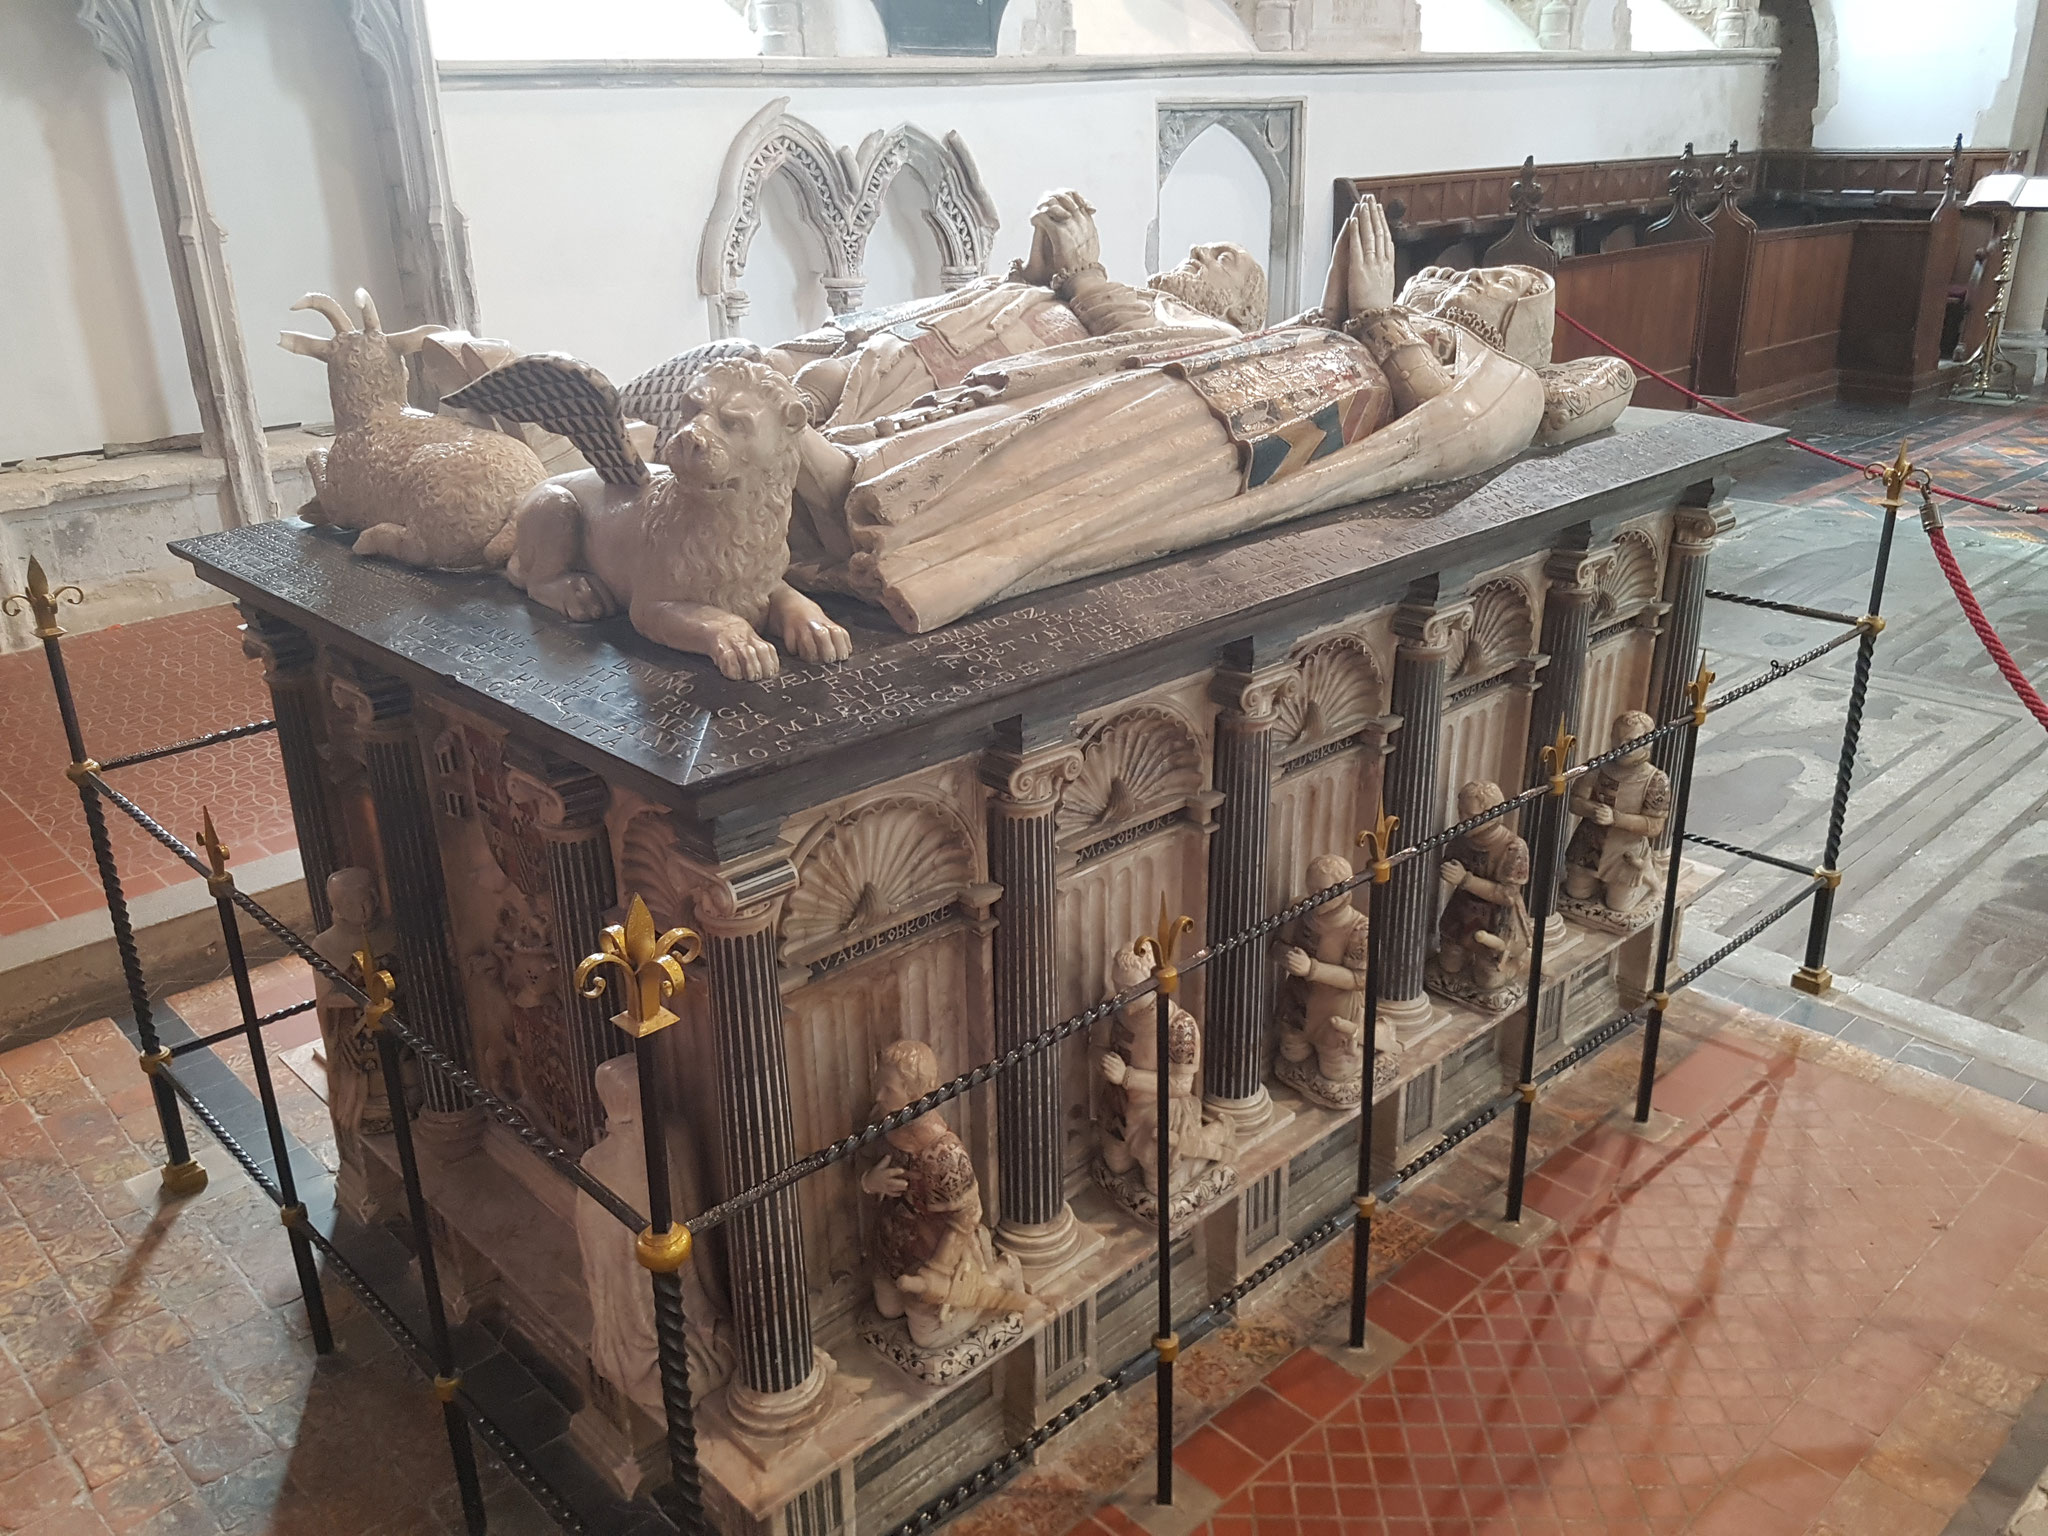 Tomb chest of 9th Lord Cobham d. 1561